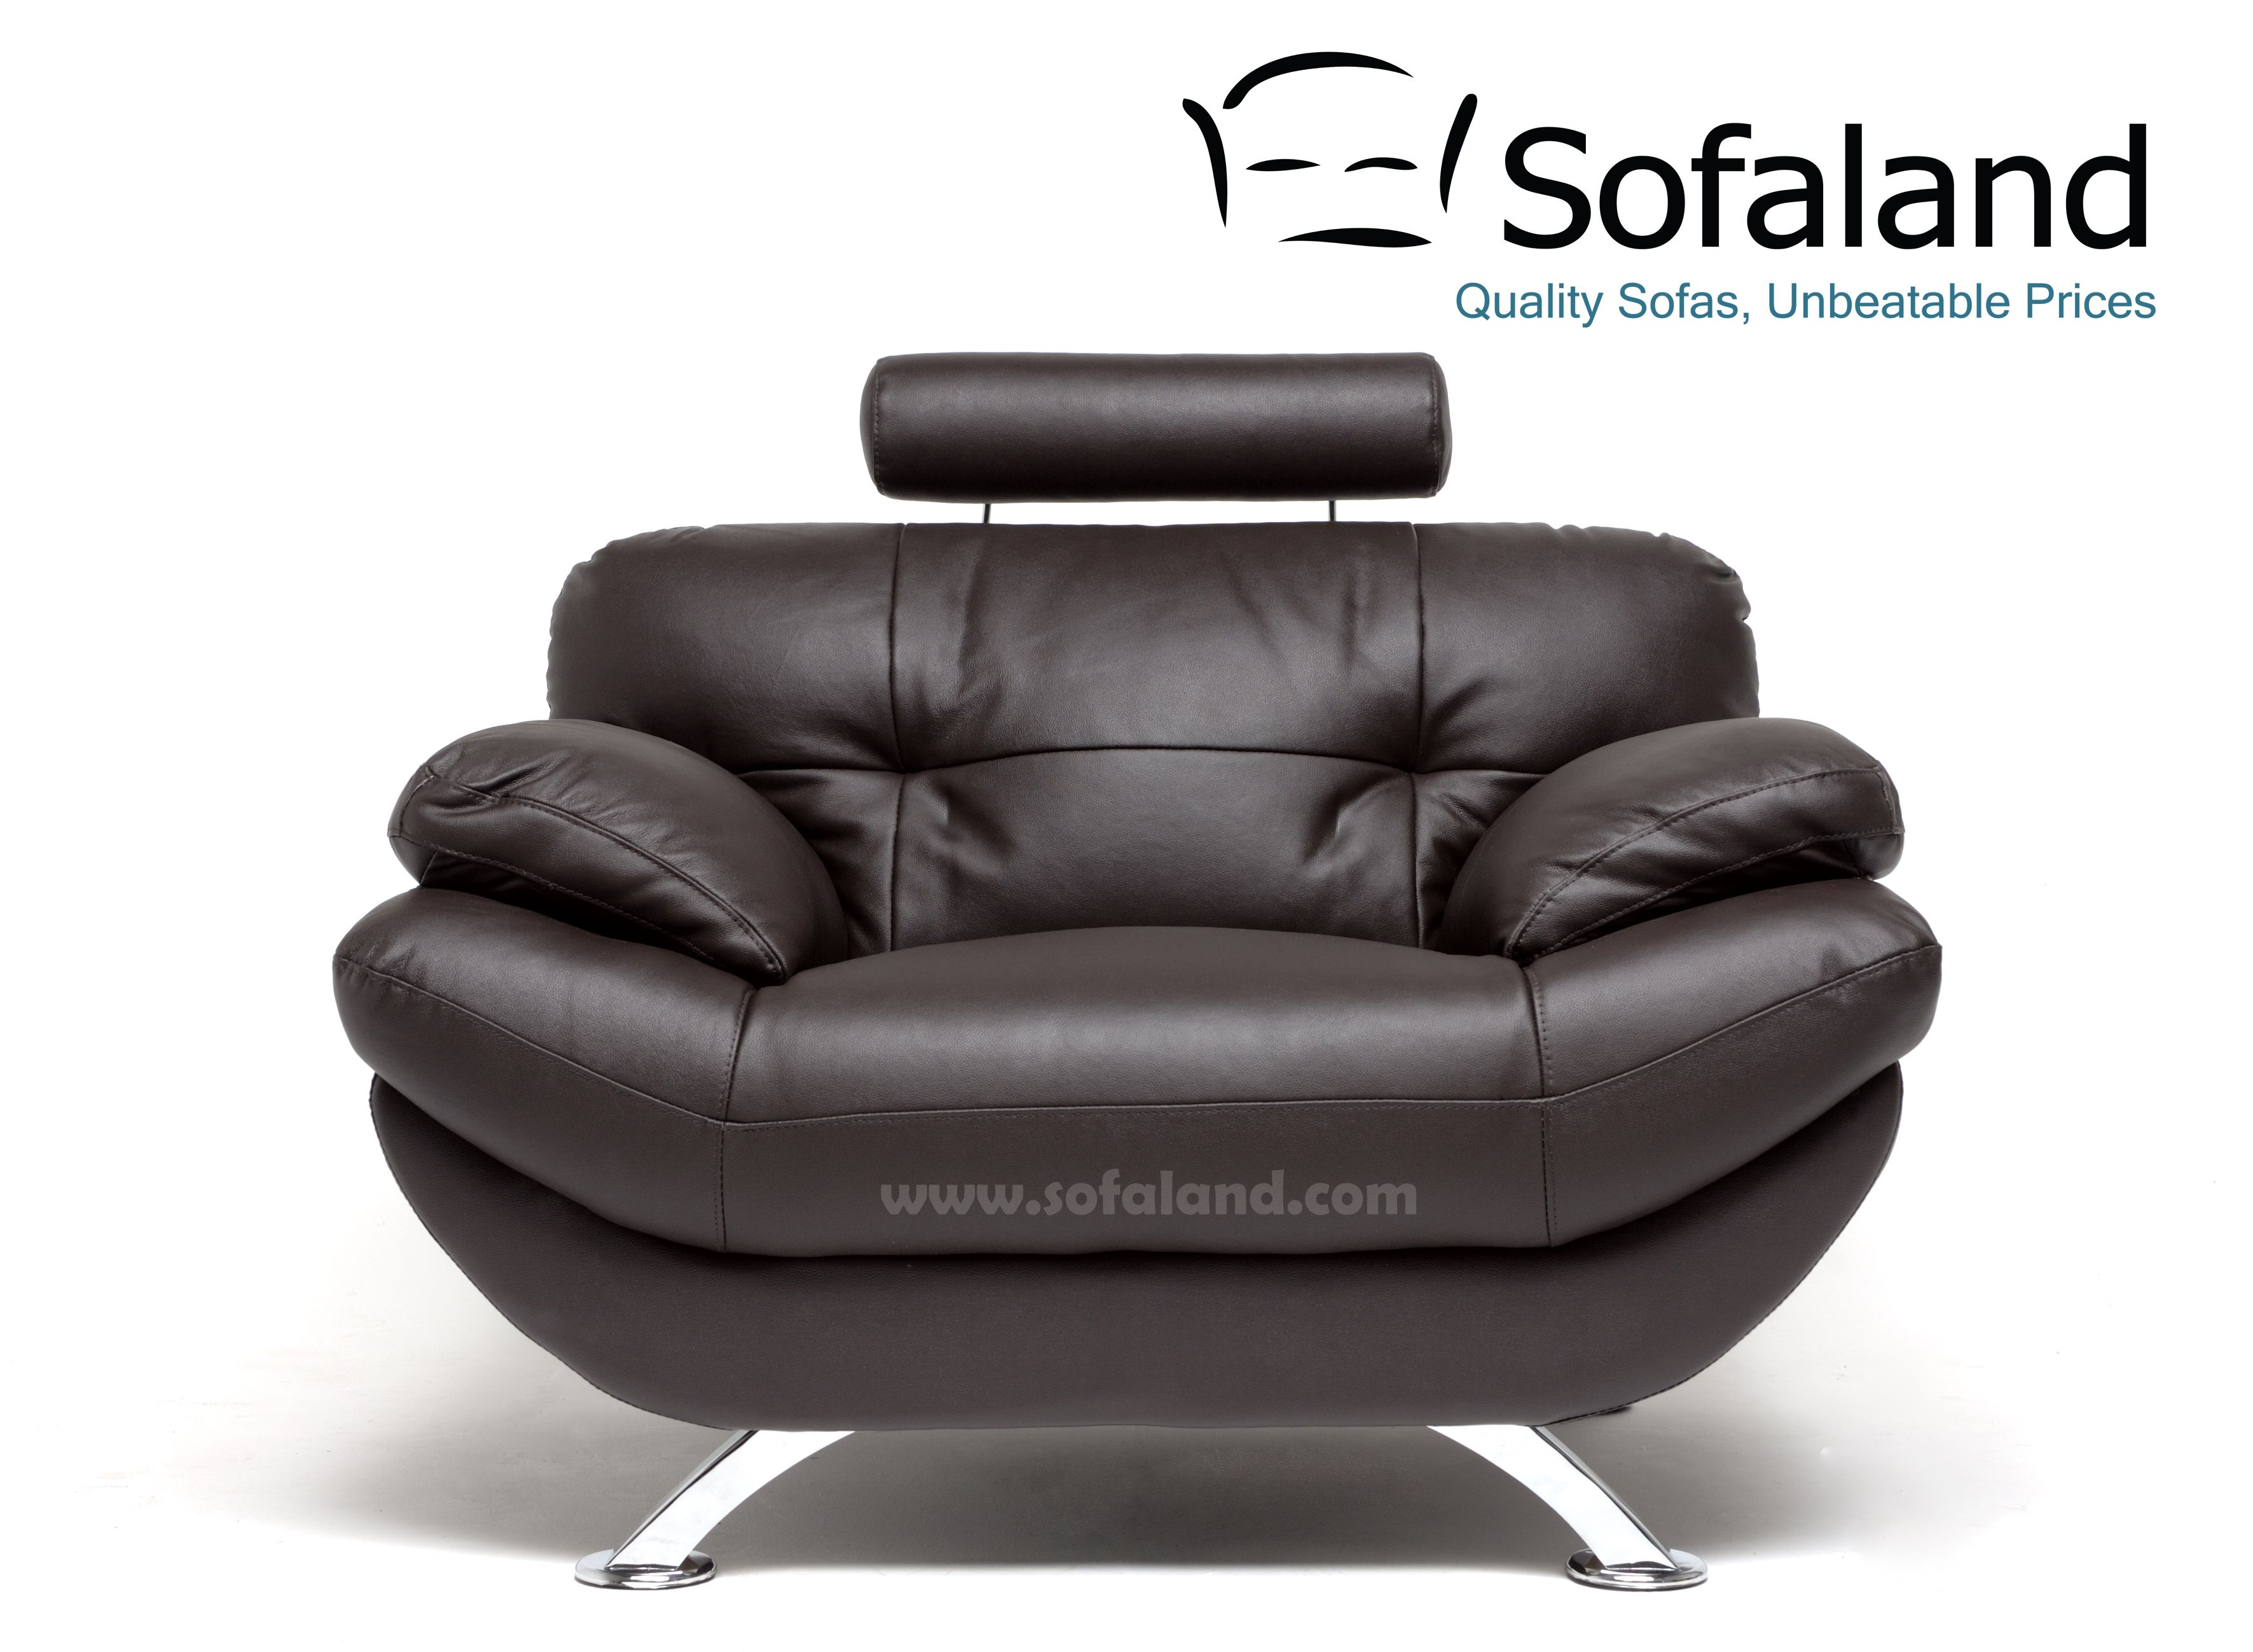 Leather Sofa Online Here You Get Best Quality Sofas According To Your Requirement With Various Sizeultiple Colors For Home Or Offices